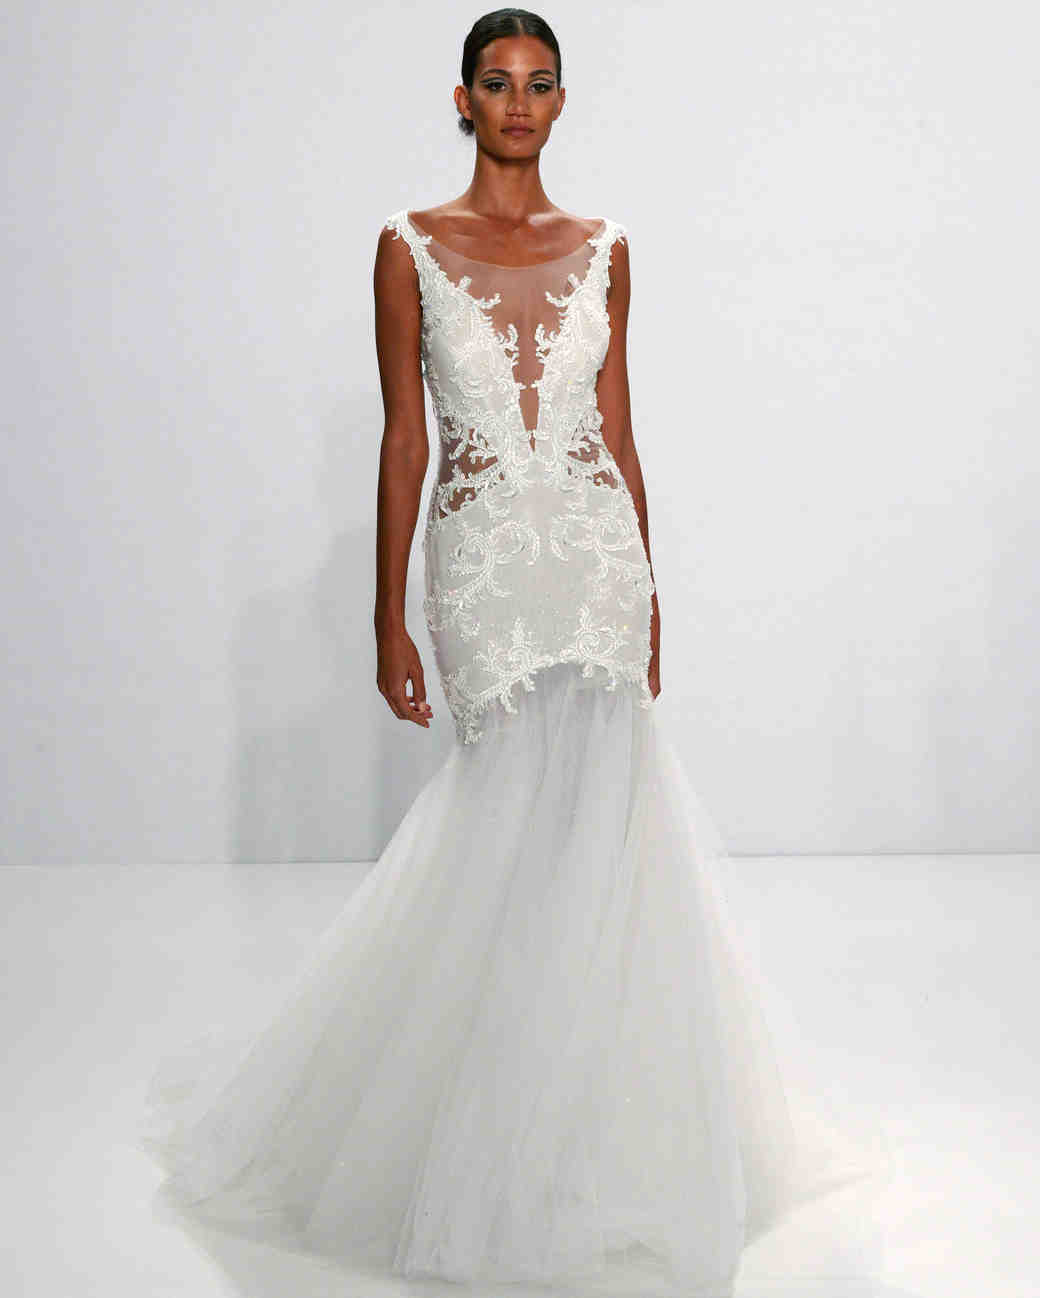 Wedding dress designers pnina tornai wedding dresses in for Pnina tornai wedding dresses prices